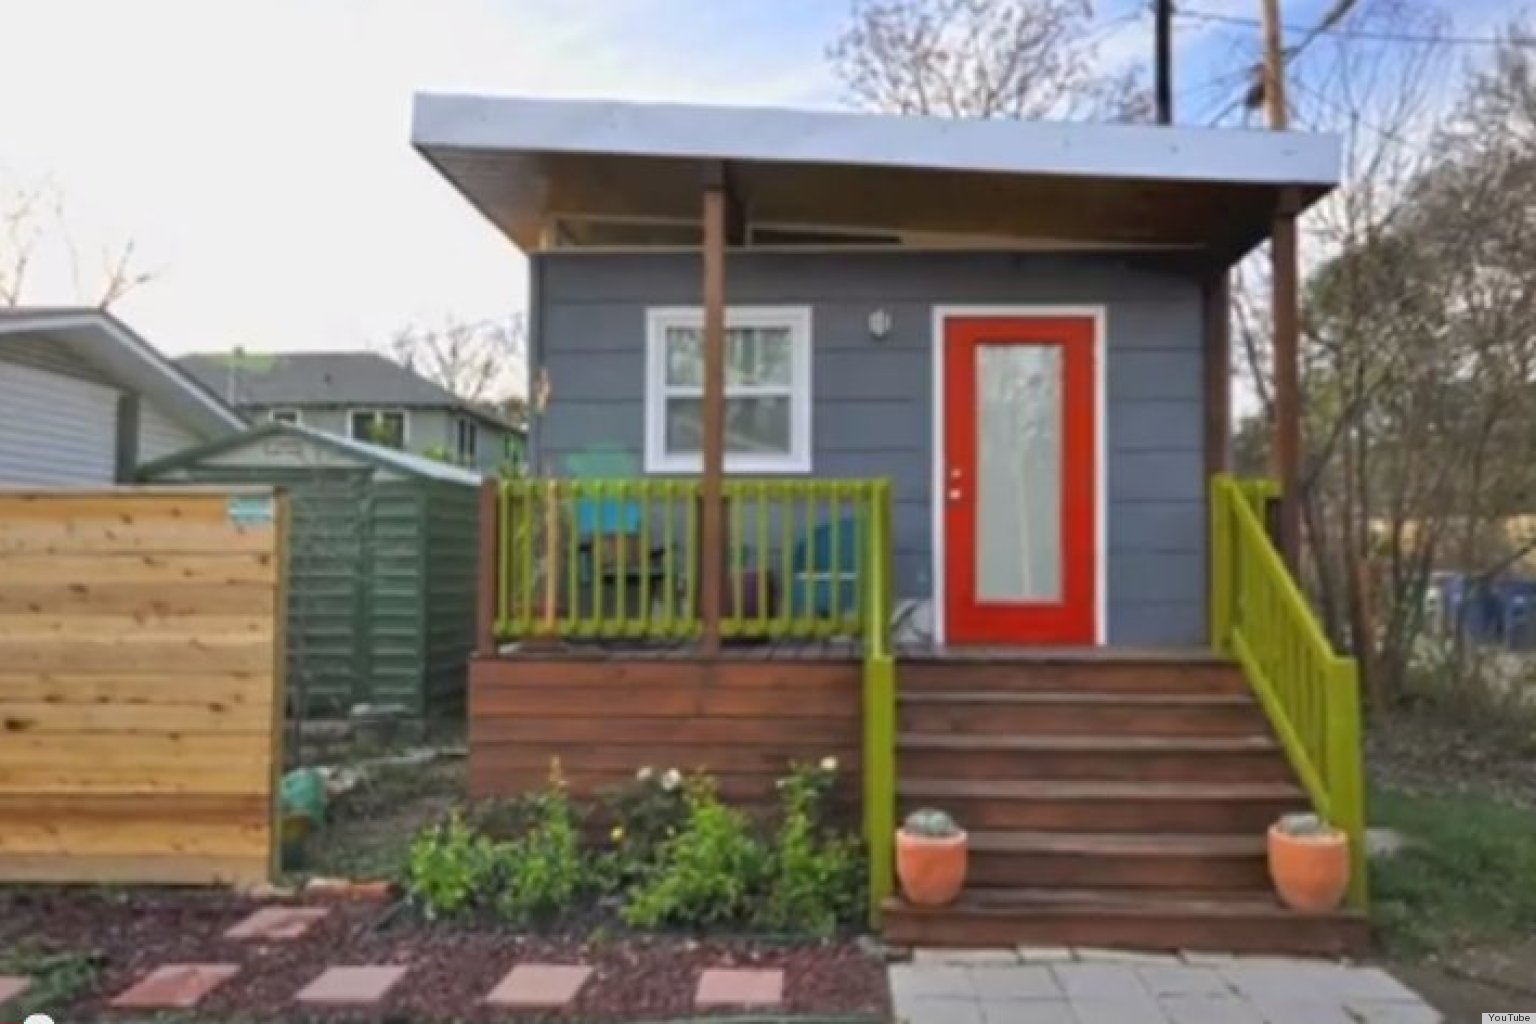 kanga prefab is a tiny home thatll change minds about small space living video huffington post